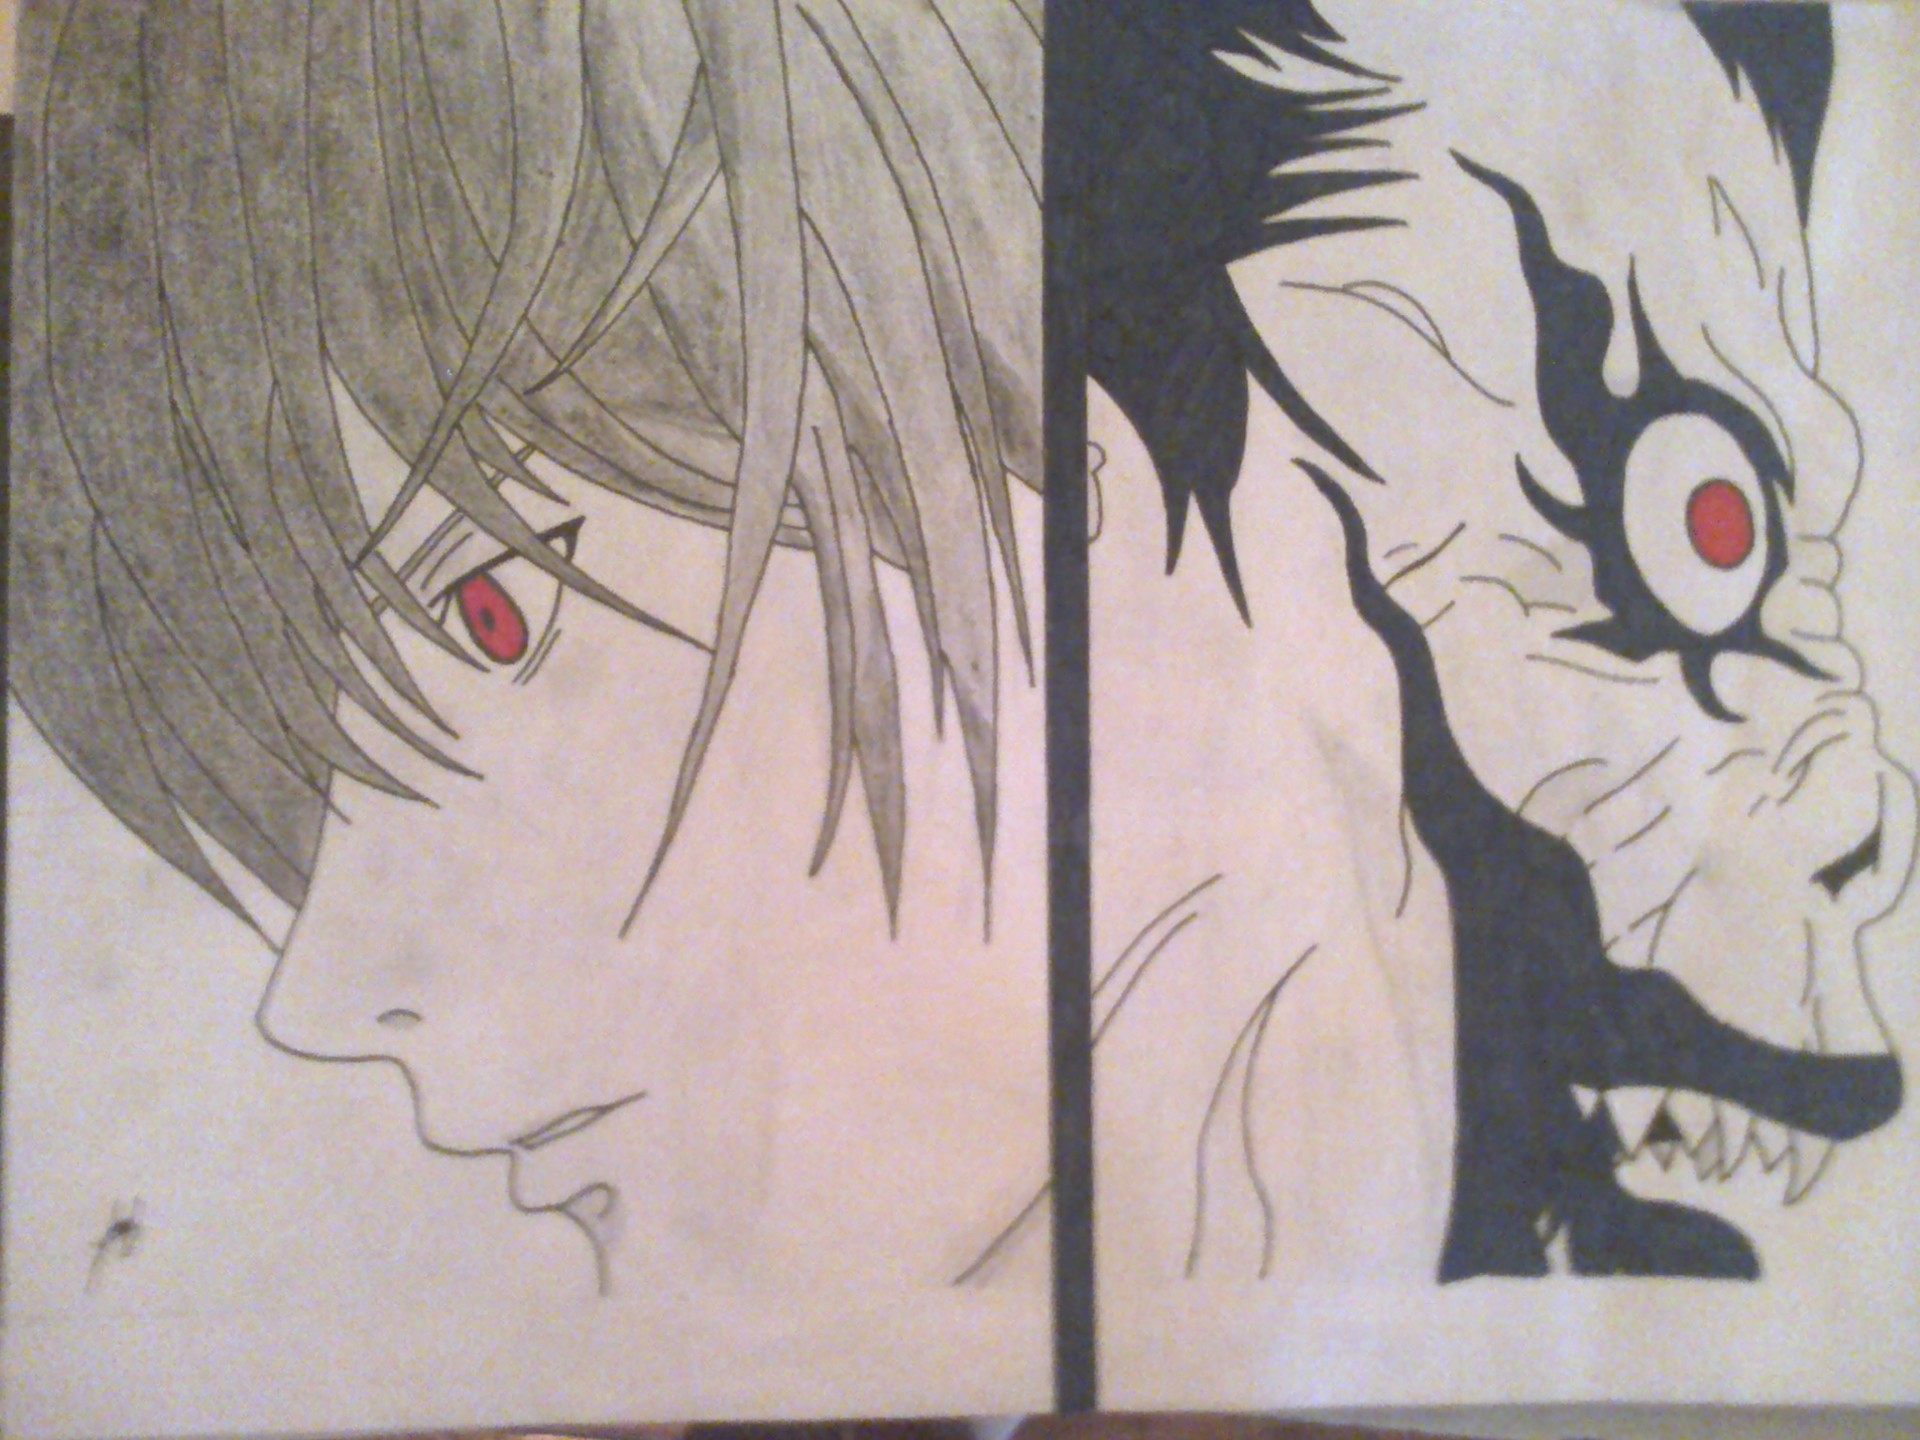 Dibujos Para Colorear De Death Note: Dibujo De Light Y Ryuk (Death Note)